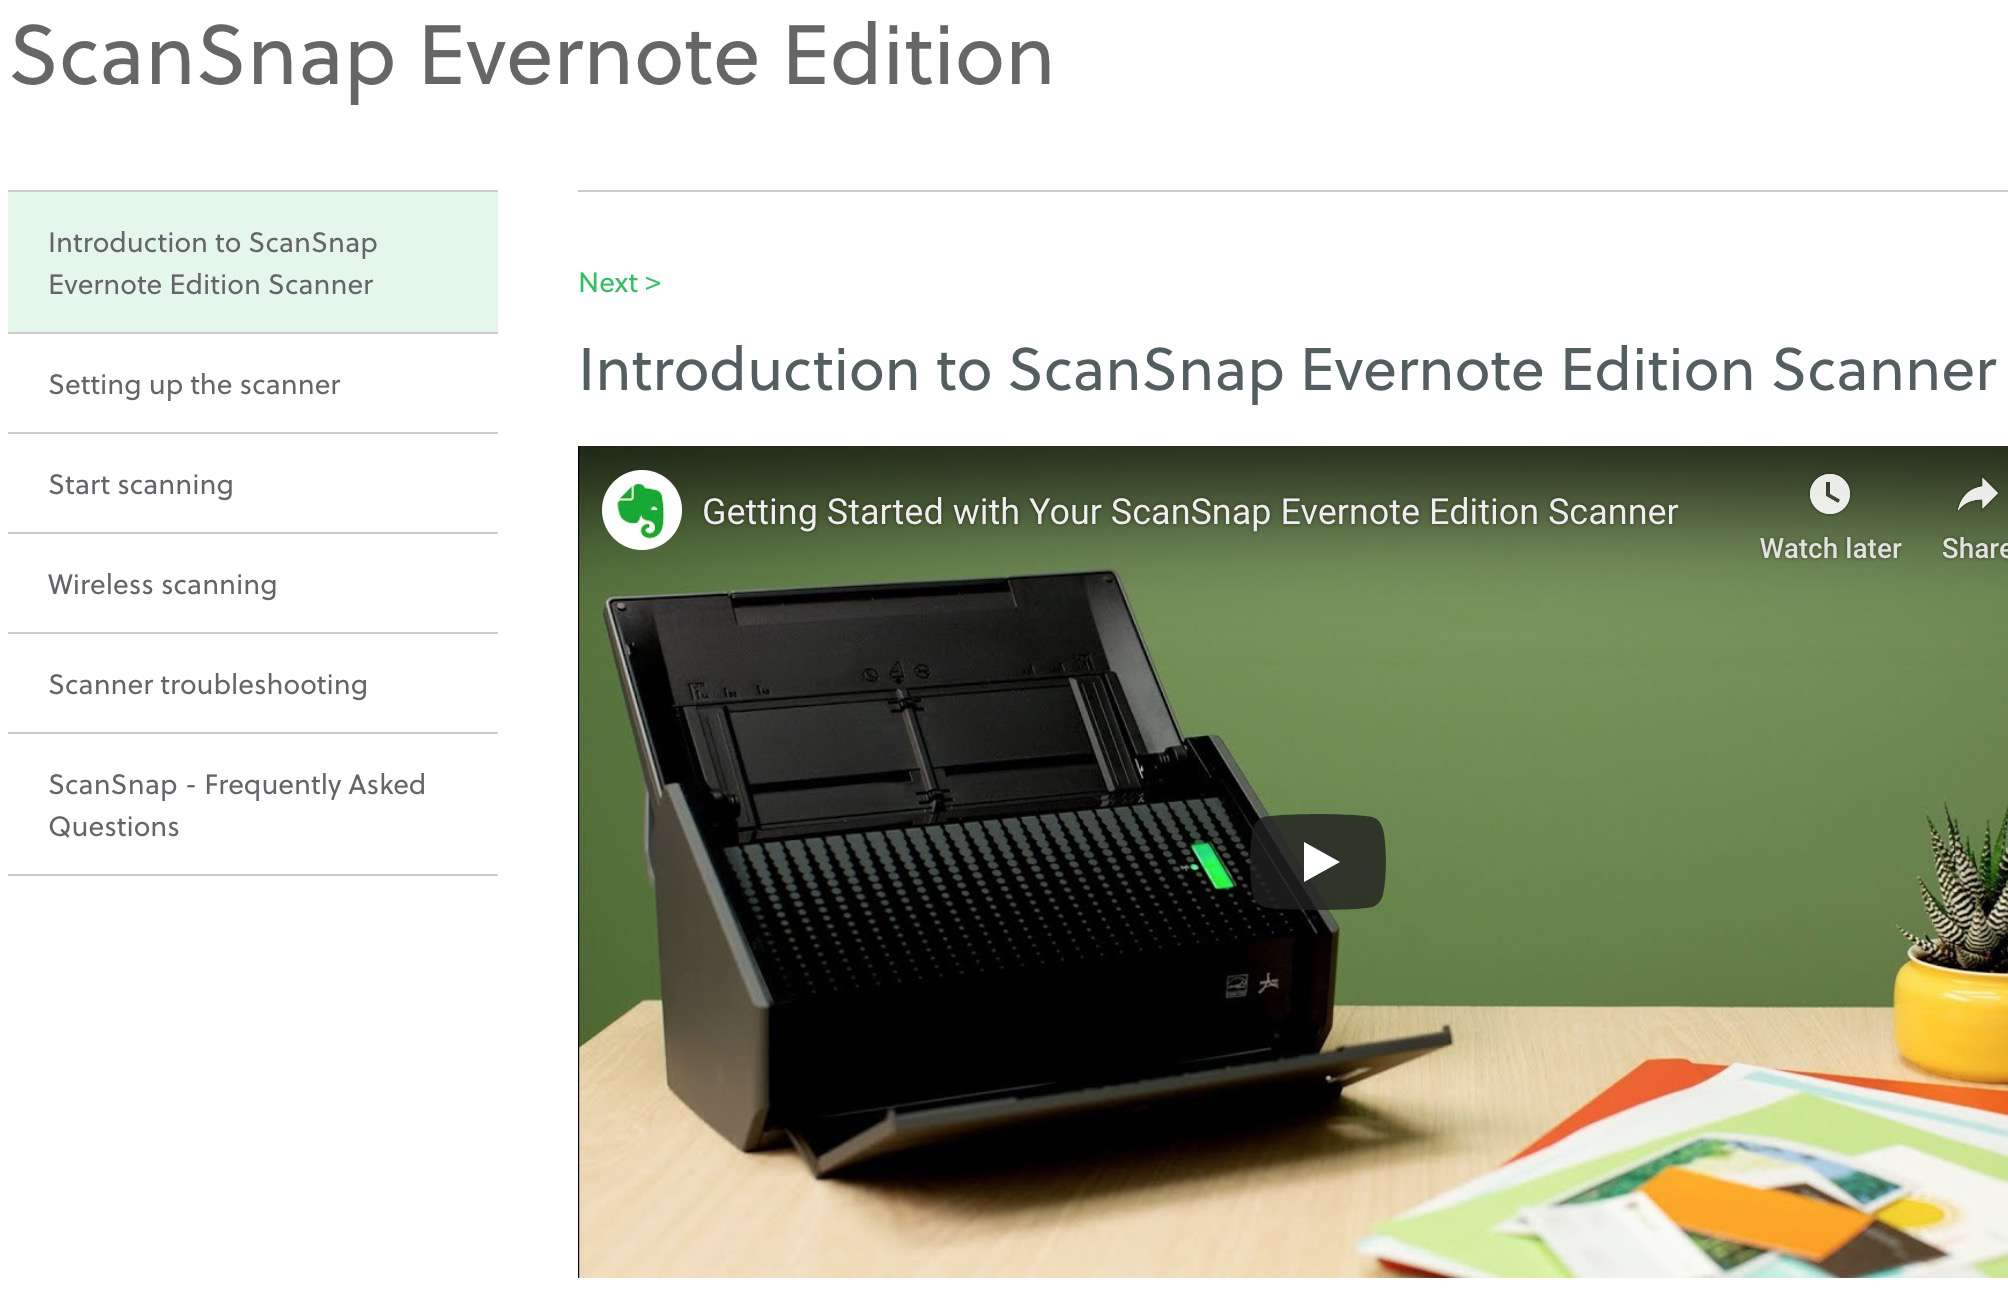 Using ScanSnap Evernote Edition